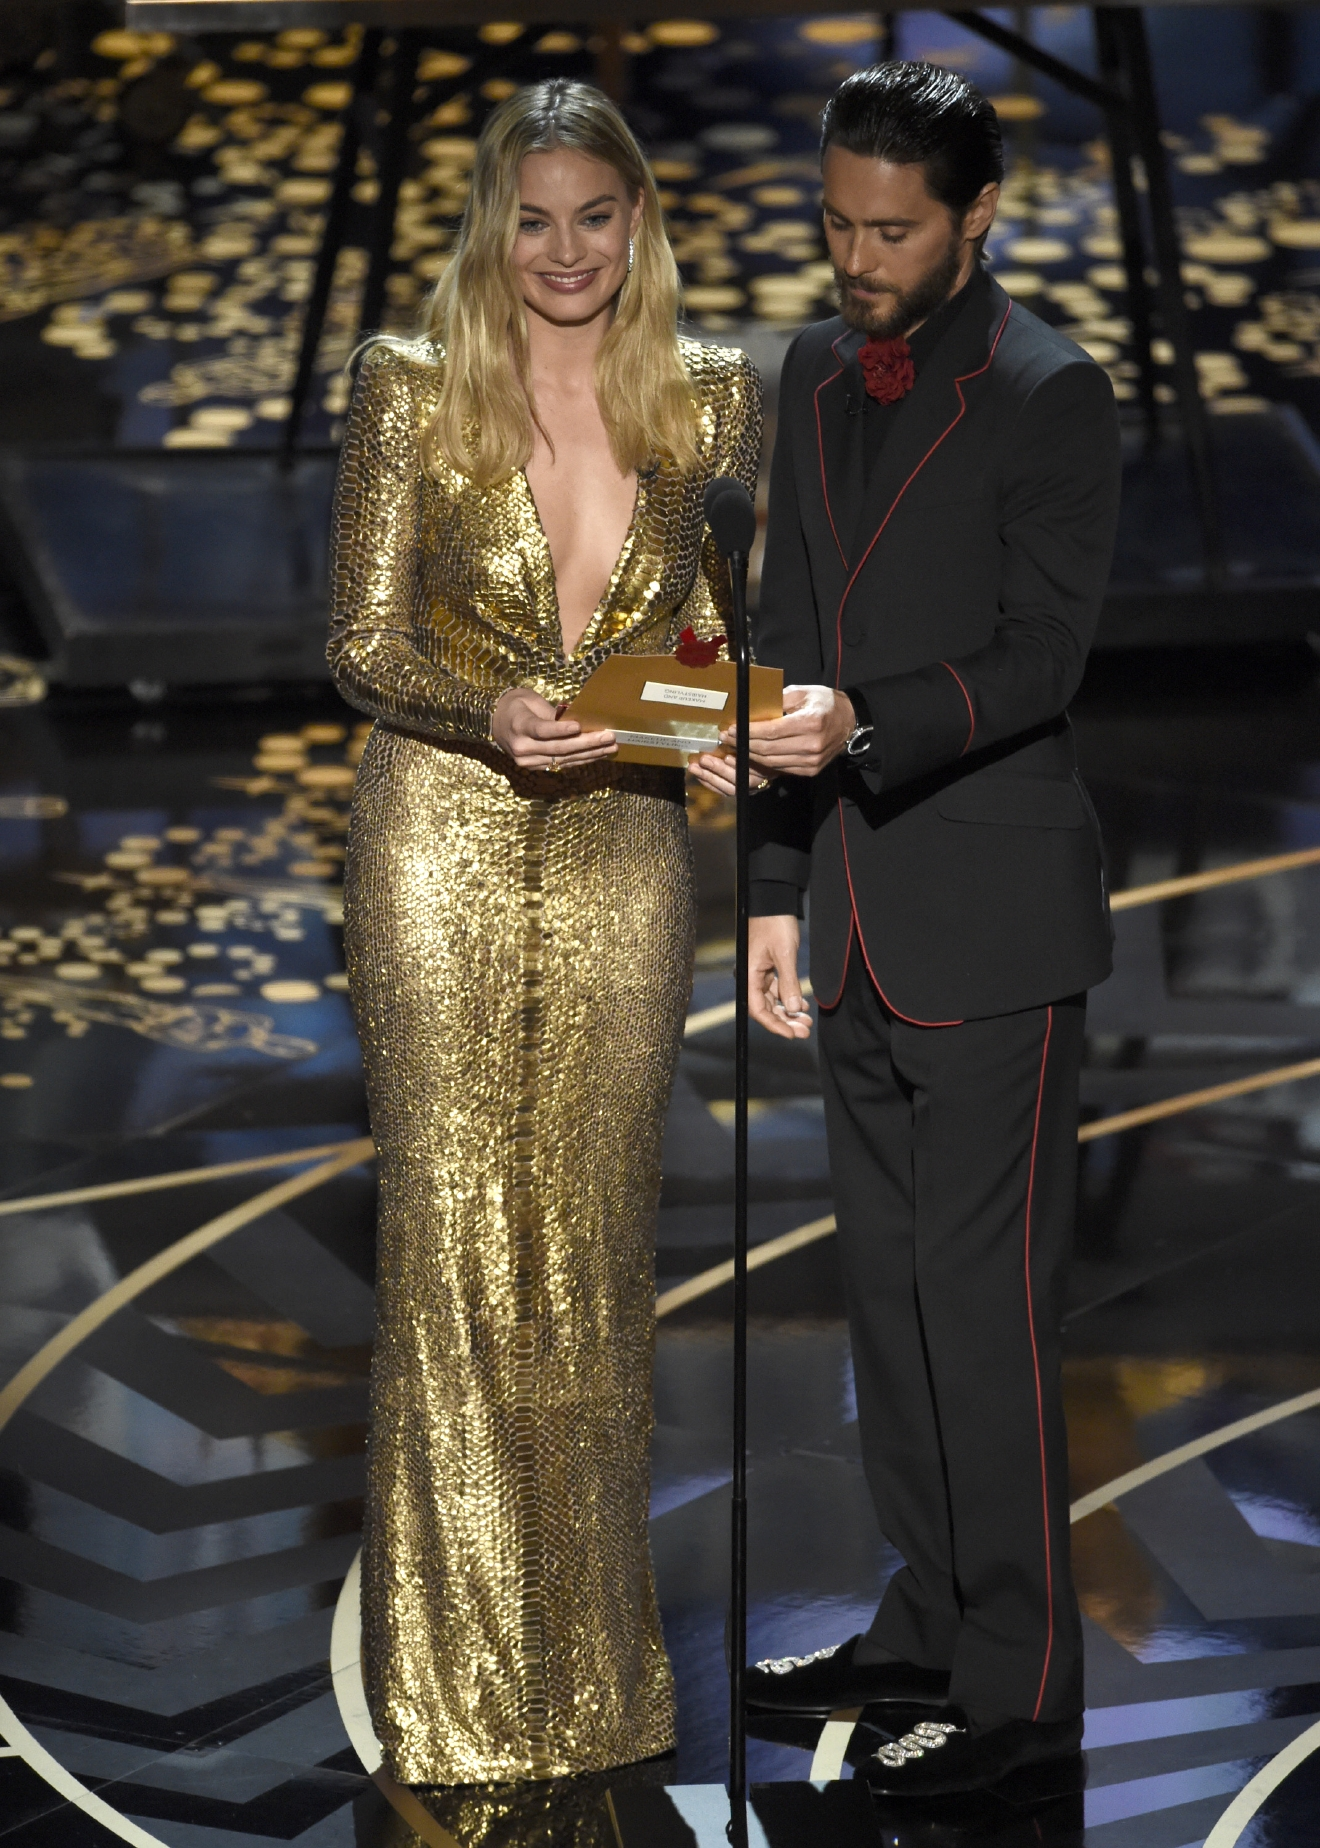 Margot Robbie, left, and Jared Leto present the award for best makeup and hairstyling at the Oscars on Sunday, Feb. 28, 2016, at the Dolby Theatre in Los Angeles. (Photo by Chris Pizzello/Invision/AP)